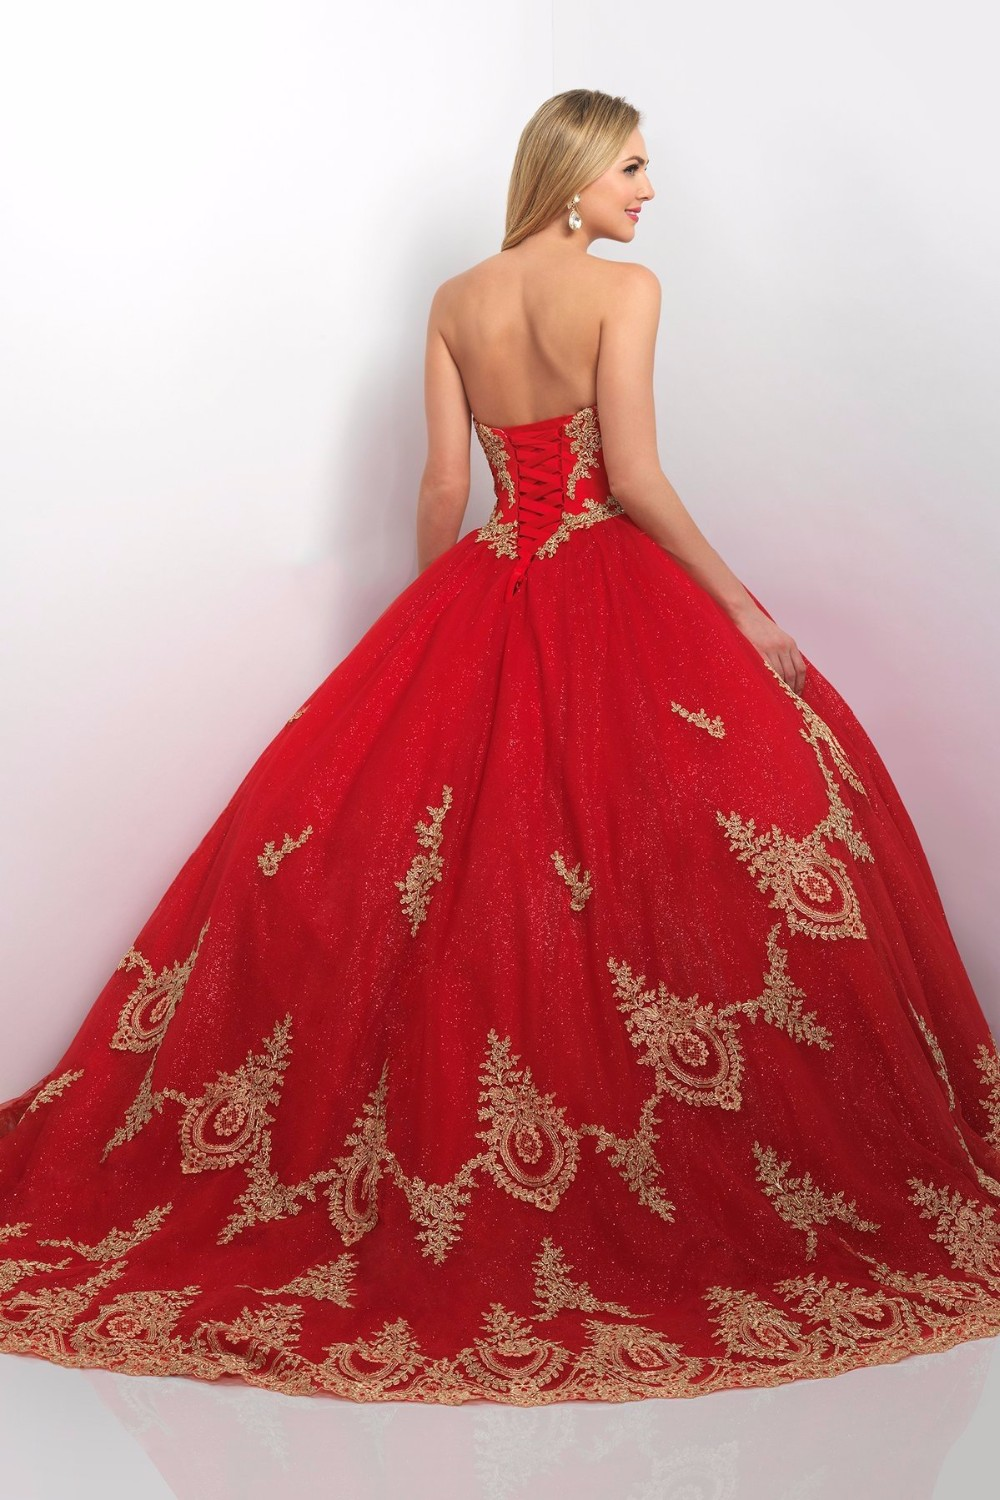 f28de0cf708 Princess Ball Gown Red Gold Quinceanera Dresses With Jacket New Sequin  Tulle Lace Appliques vestidos de quince 2019